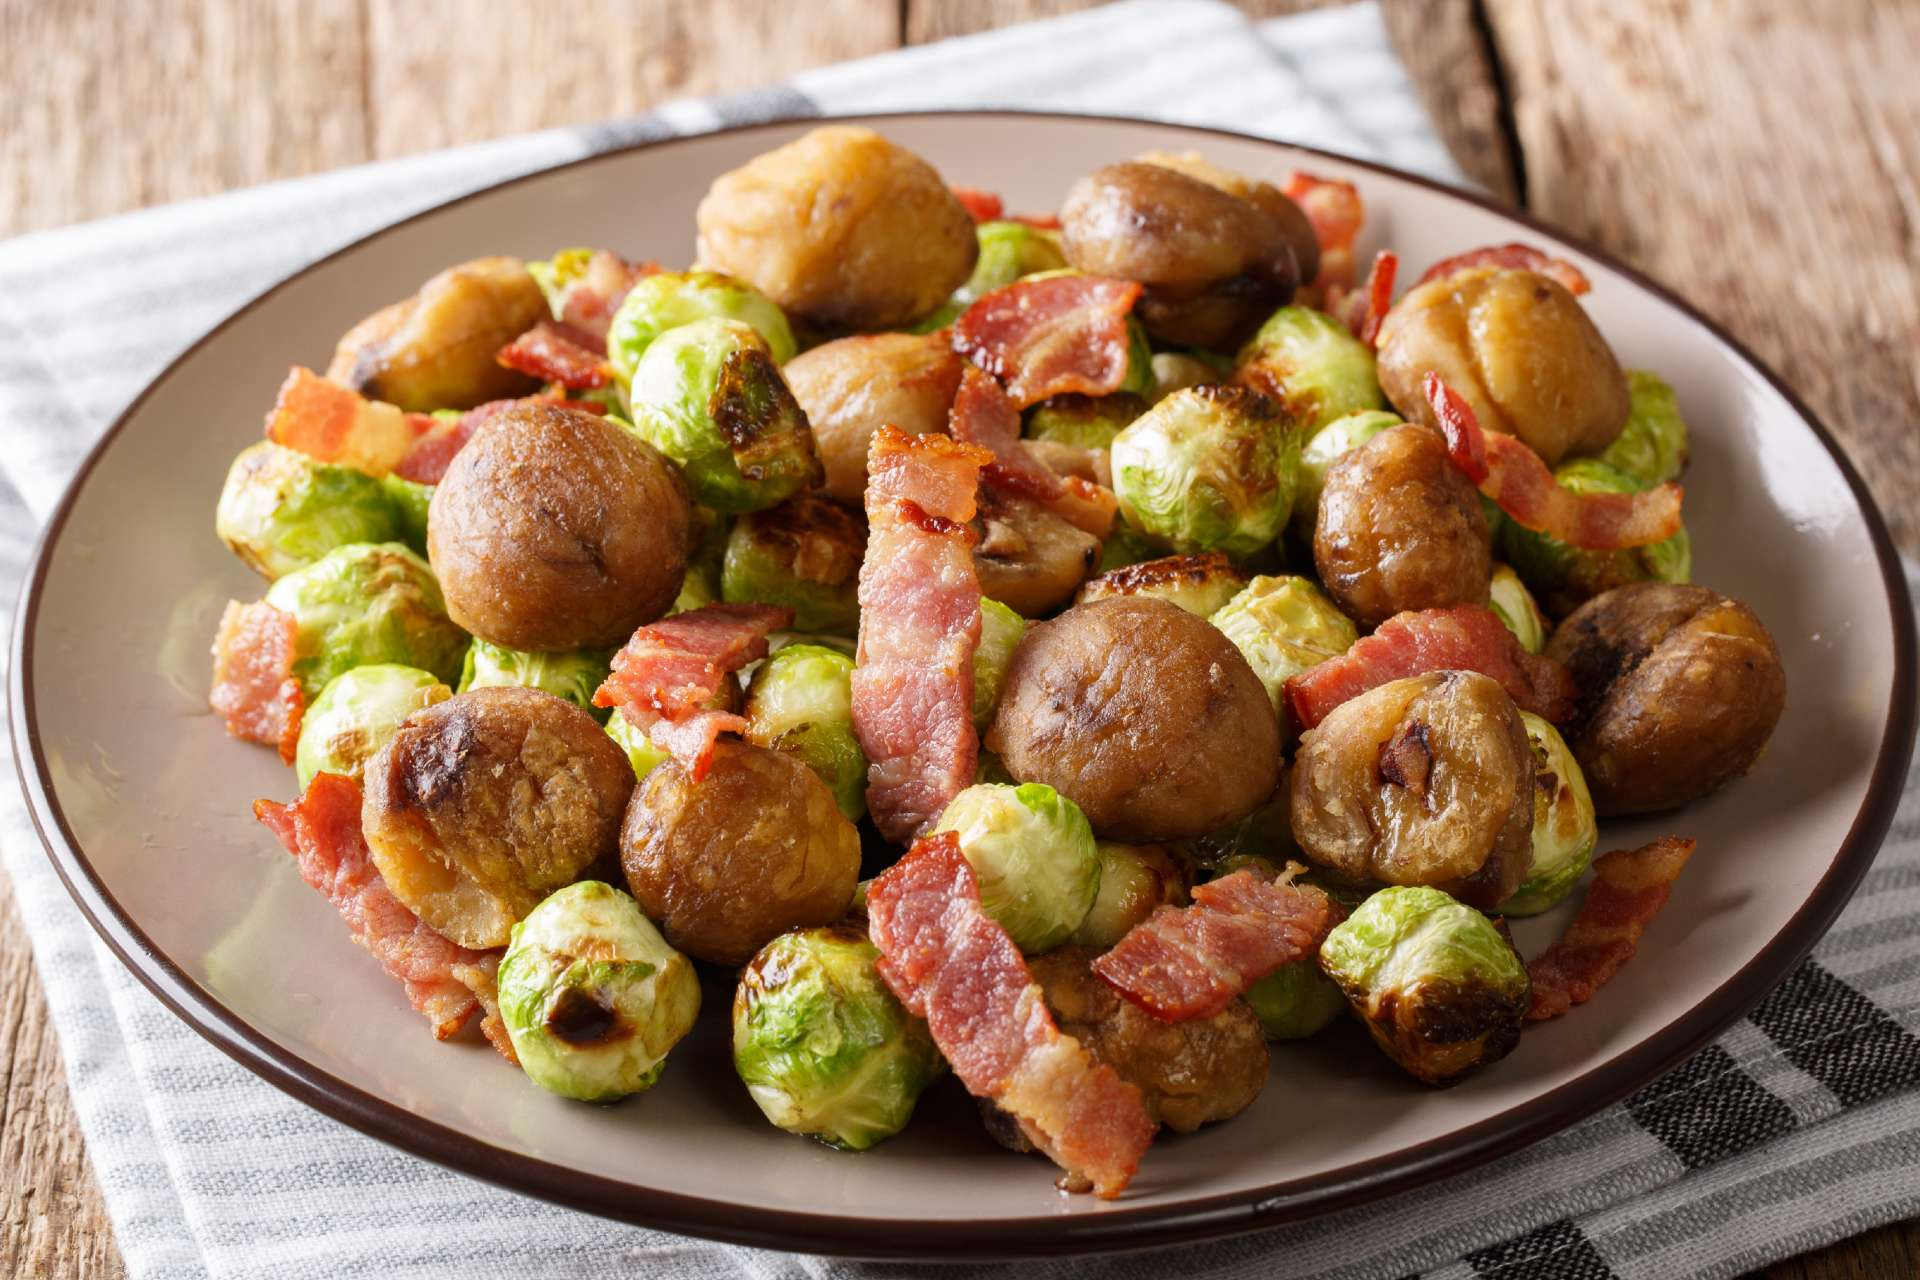 brussels sprouts with bacon ©iStock